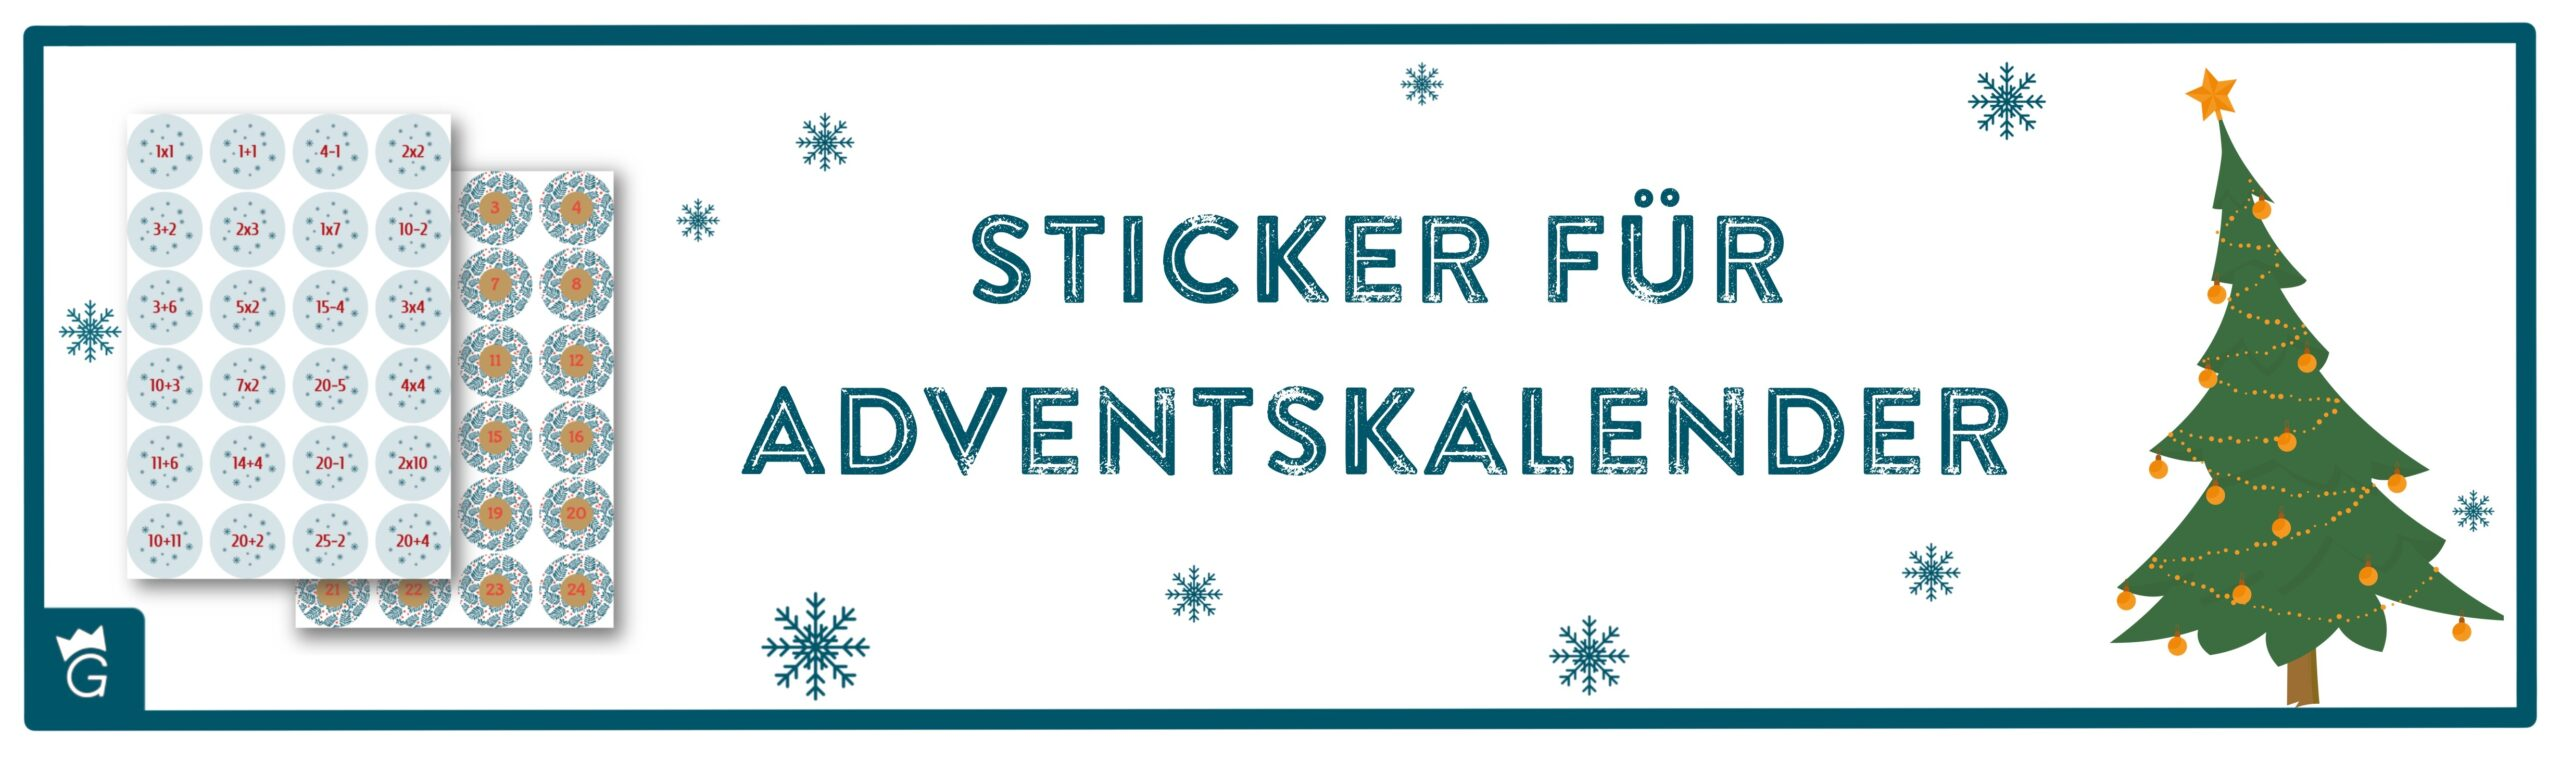 Adventskalender-Vorlagen zum Download